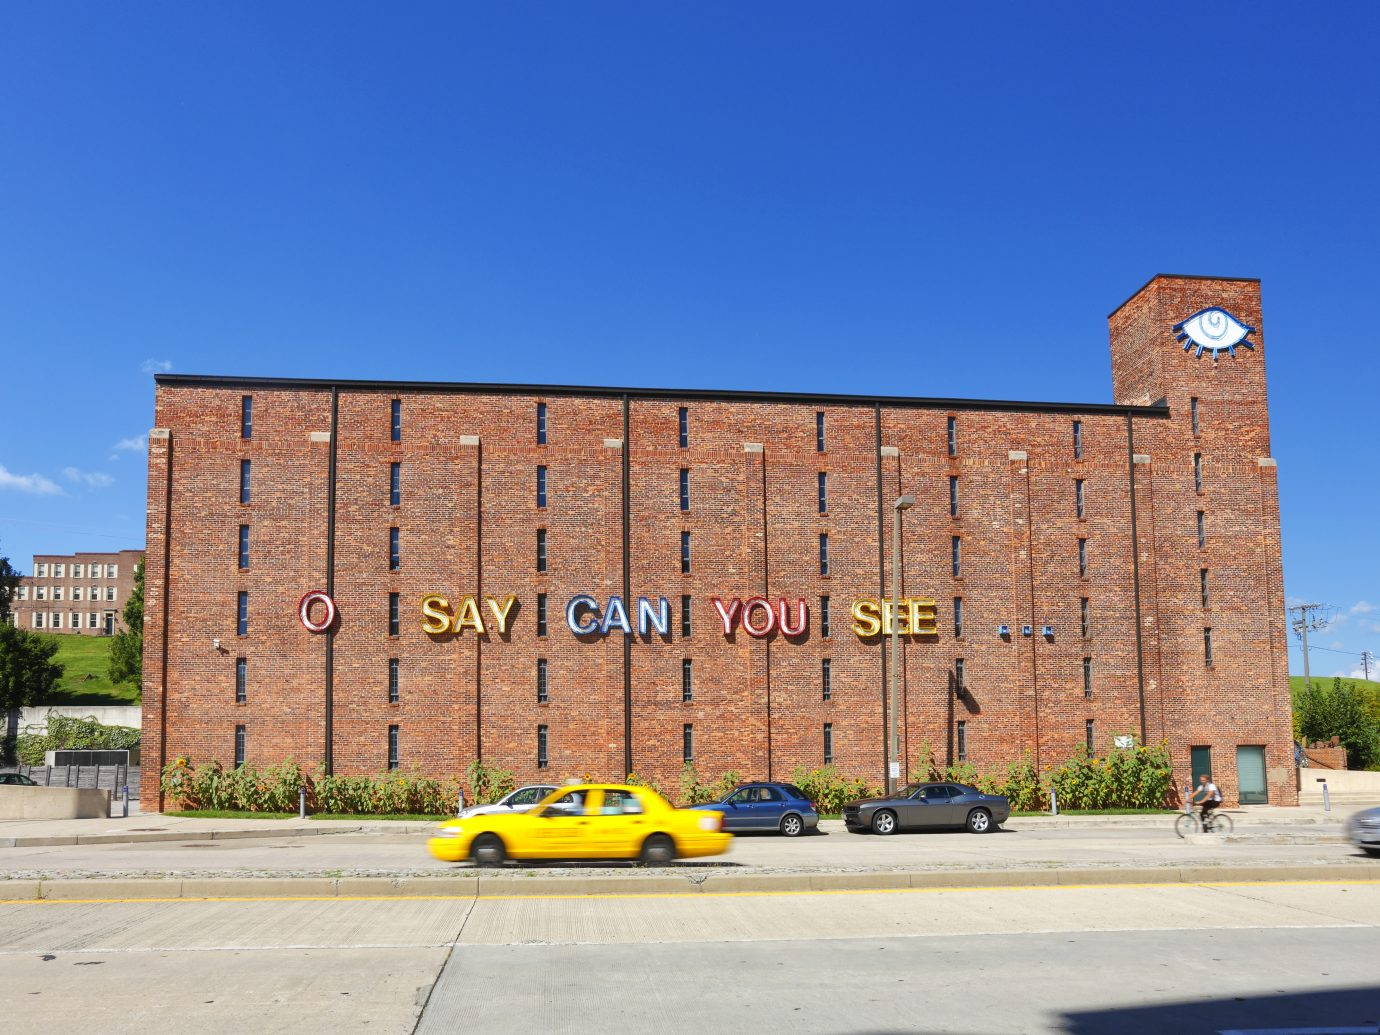 The American Visionary Art Museum in Baltimore